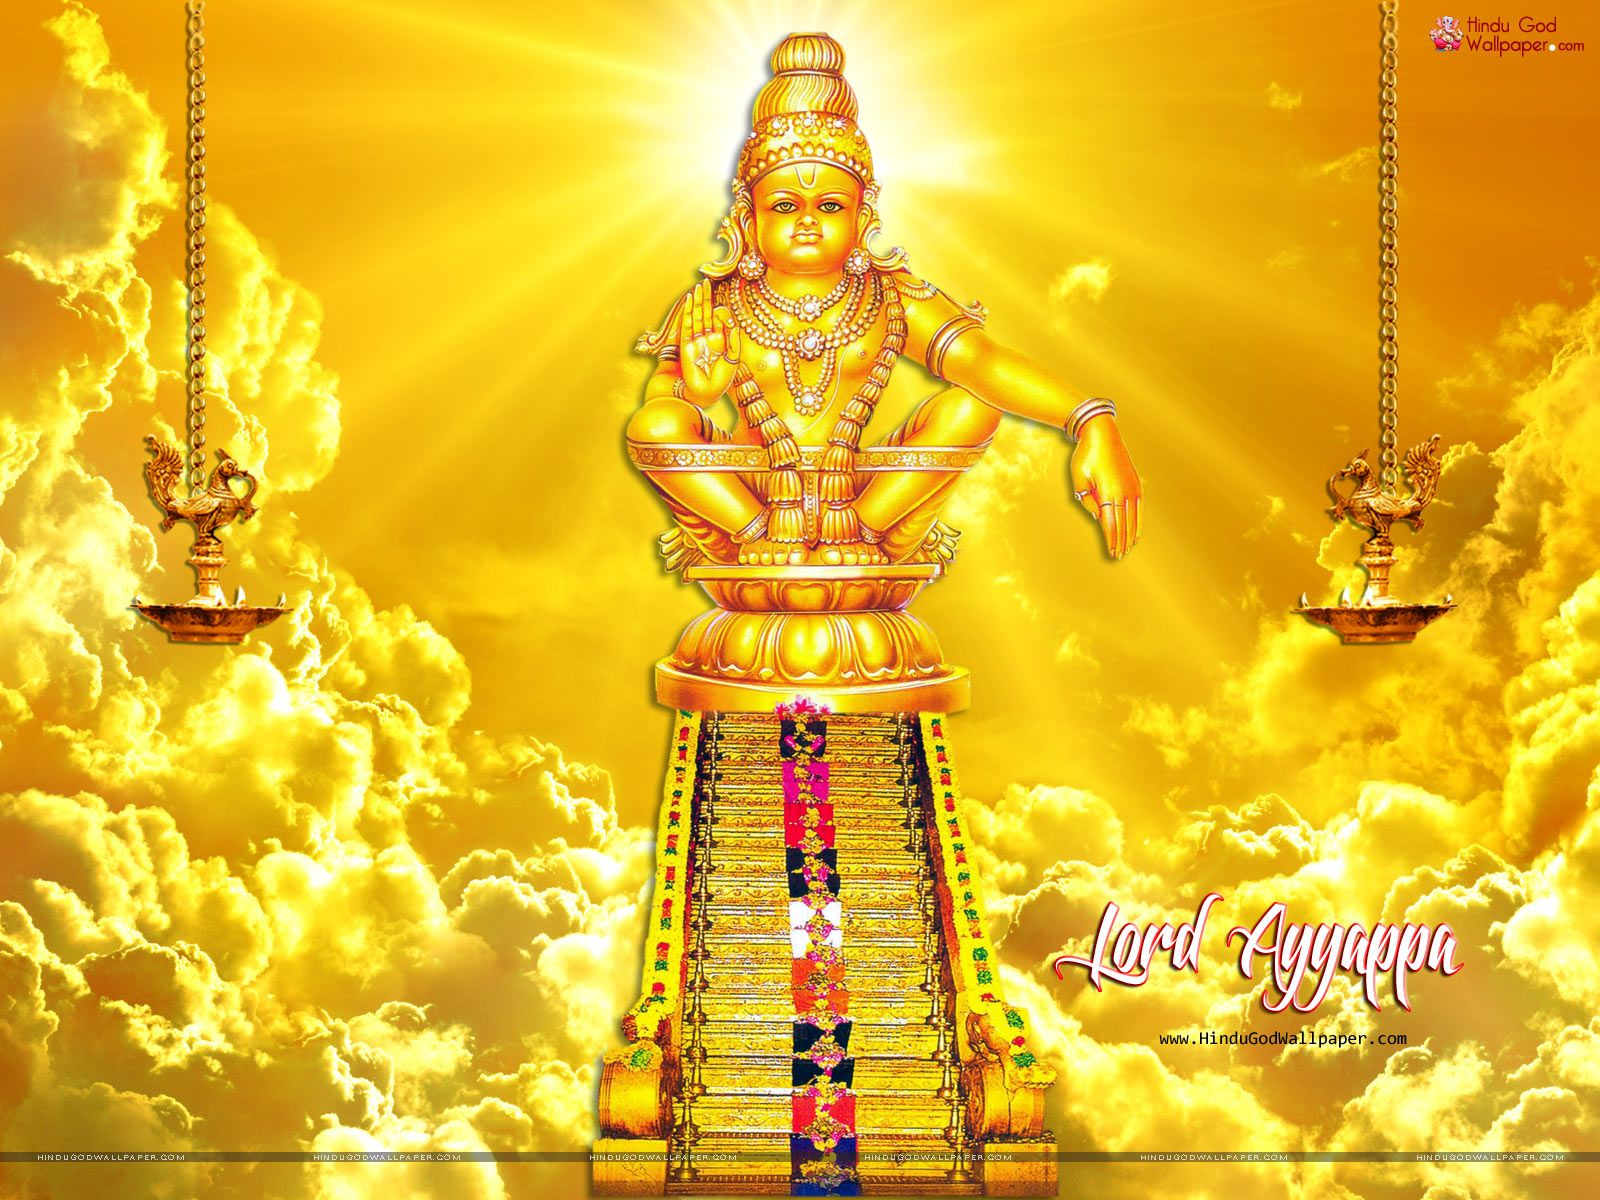 Ayyappa 18 Steps Wallpaper Free Download Wallpaper Free Download Wallpaper Images Hd Download Wallpaper Hd